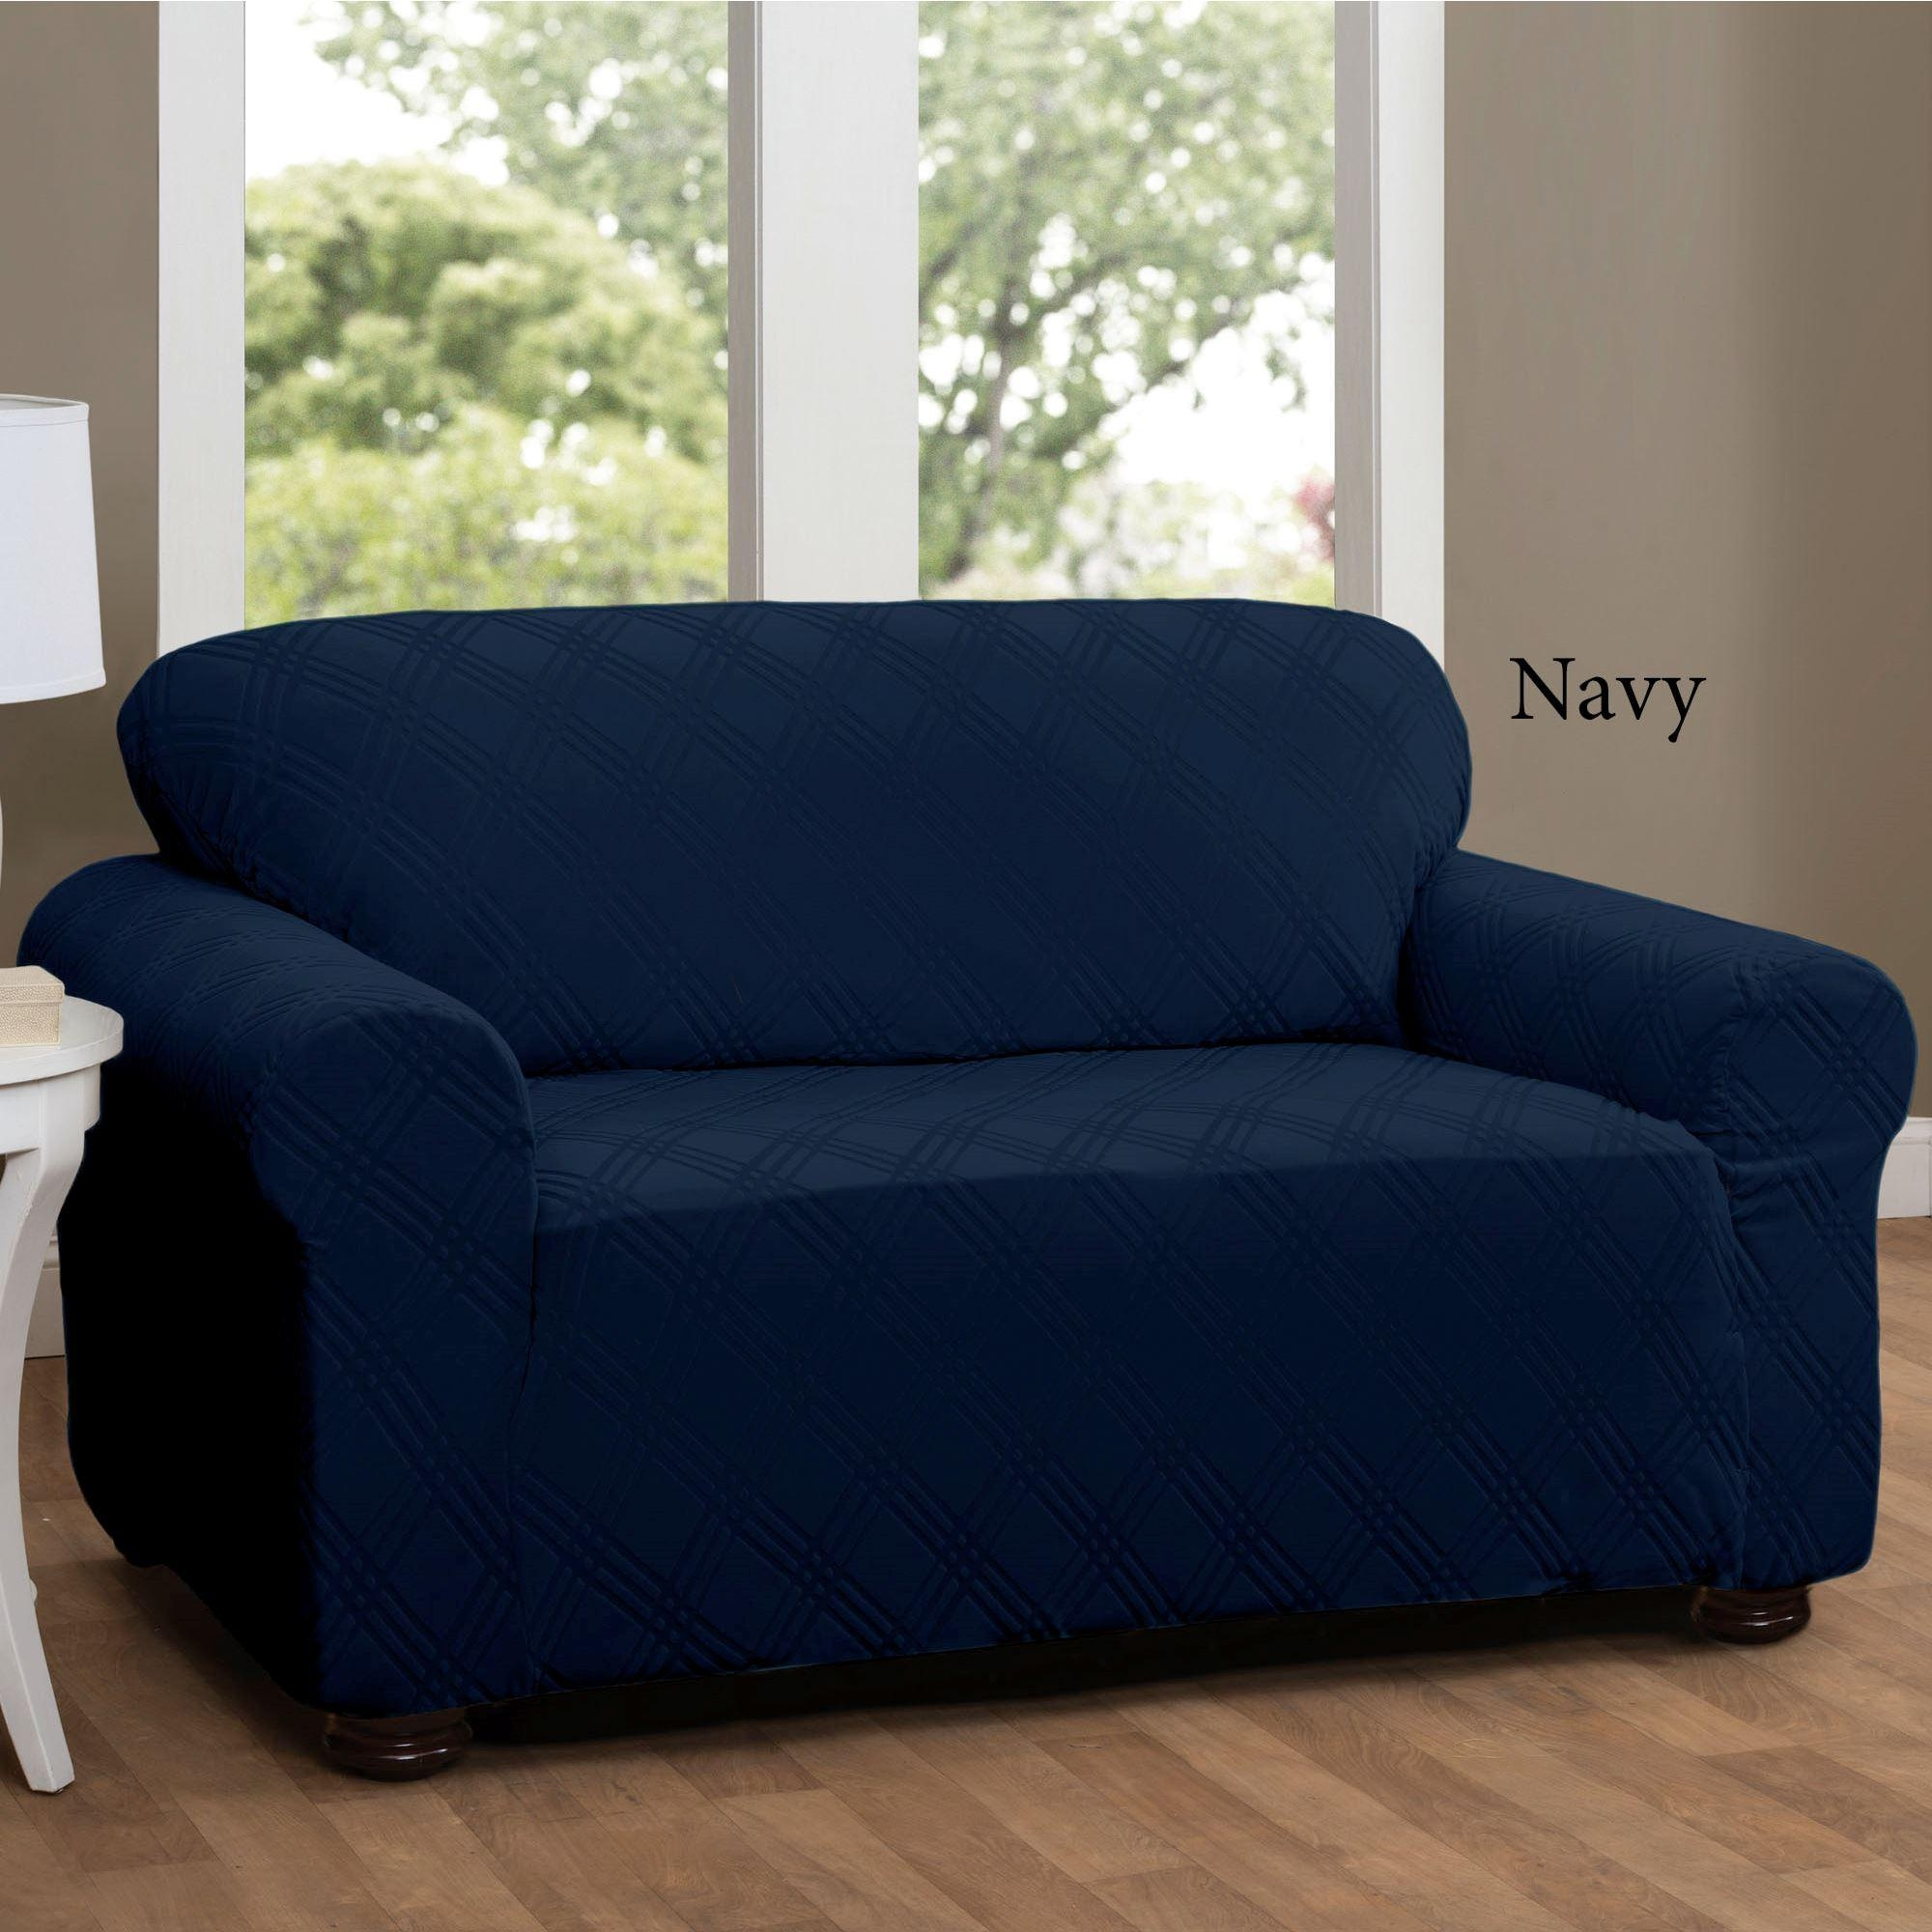 Double Diamond Stretch Loveseat Slipcovers With Regard To Navy Blue Slipcovers (View 7 of 20)